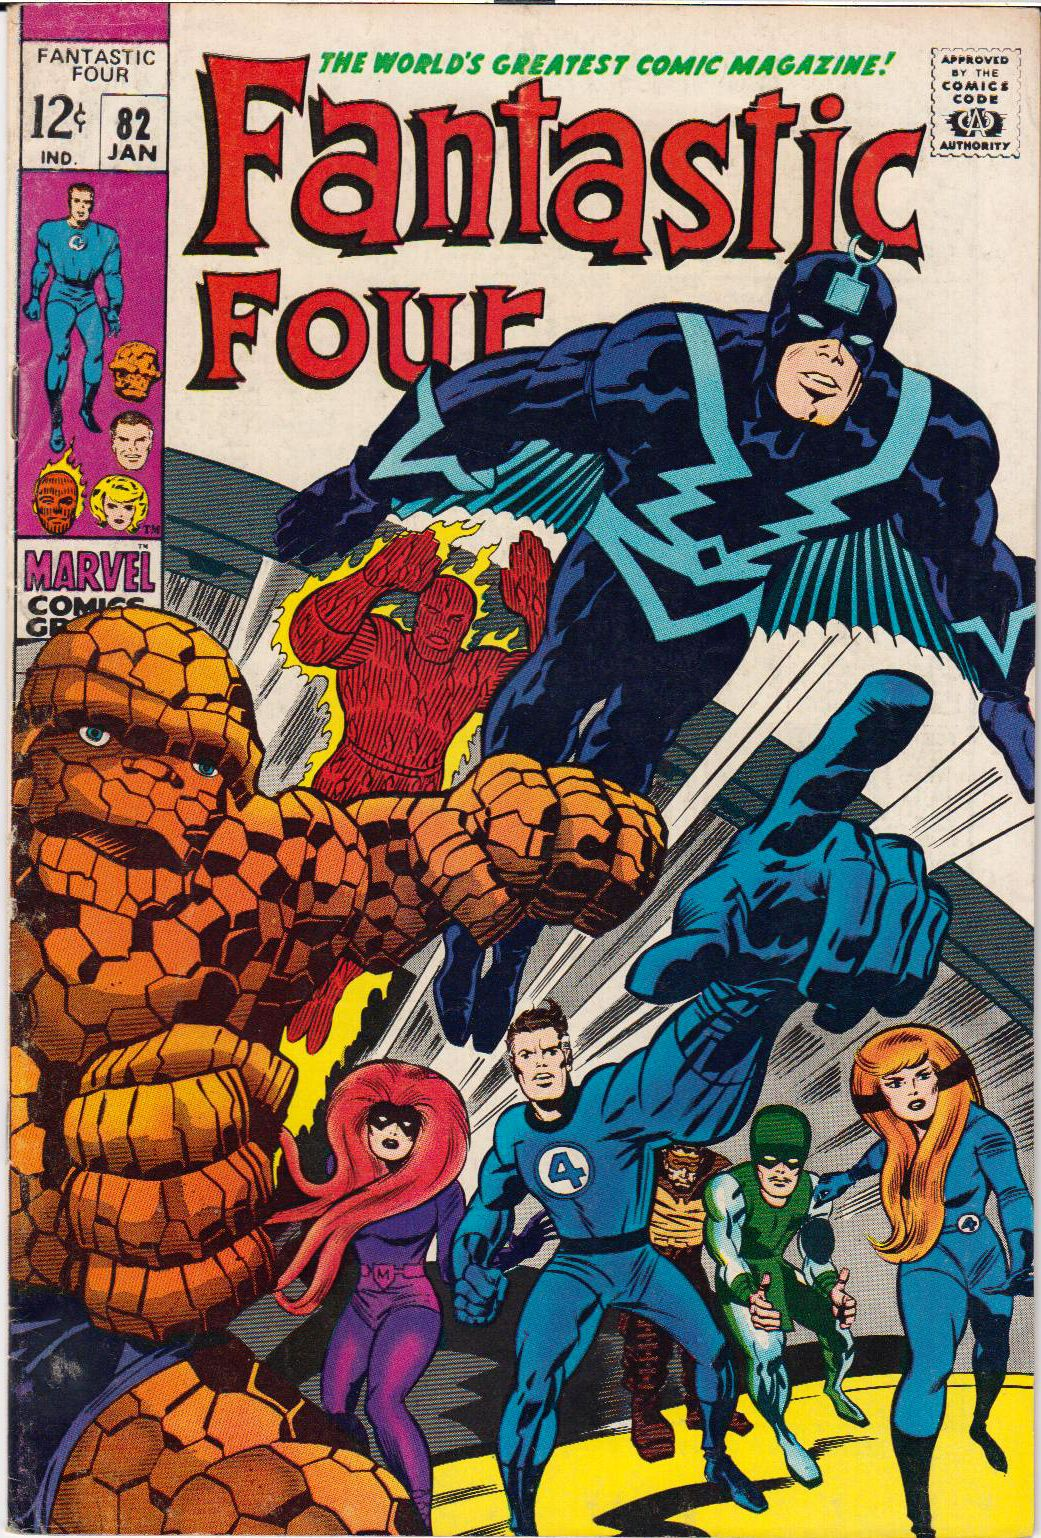 Featuring Jack Kirby Cover Art  Stan Lee and Jack Kirby StoriesJack Kirby Cover